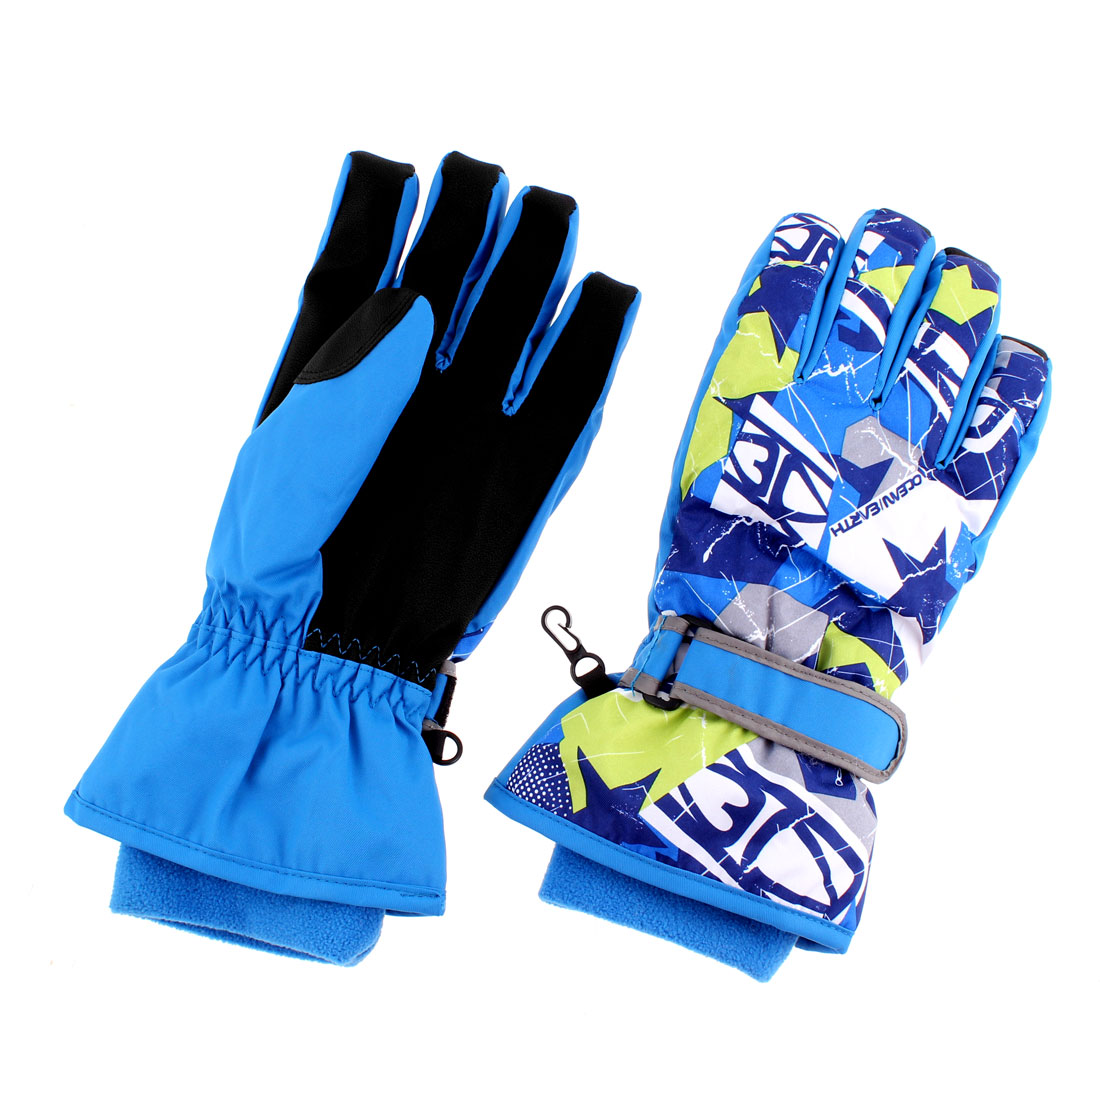 Adults Winter Outdoor Sports Skiing Ski Snowboard Gloves Blue XL Pair